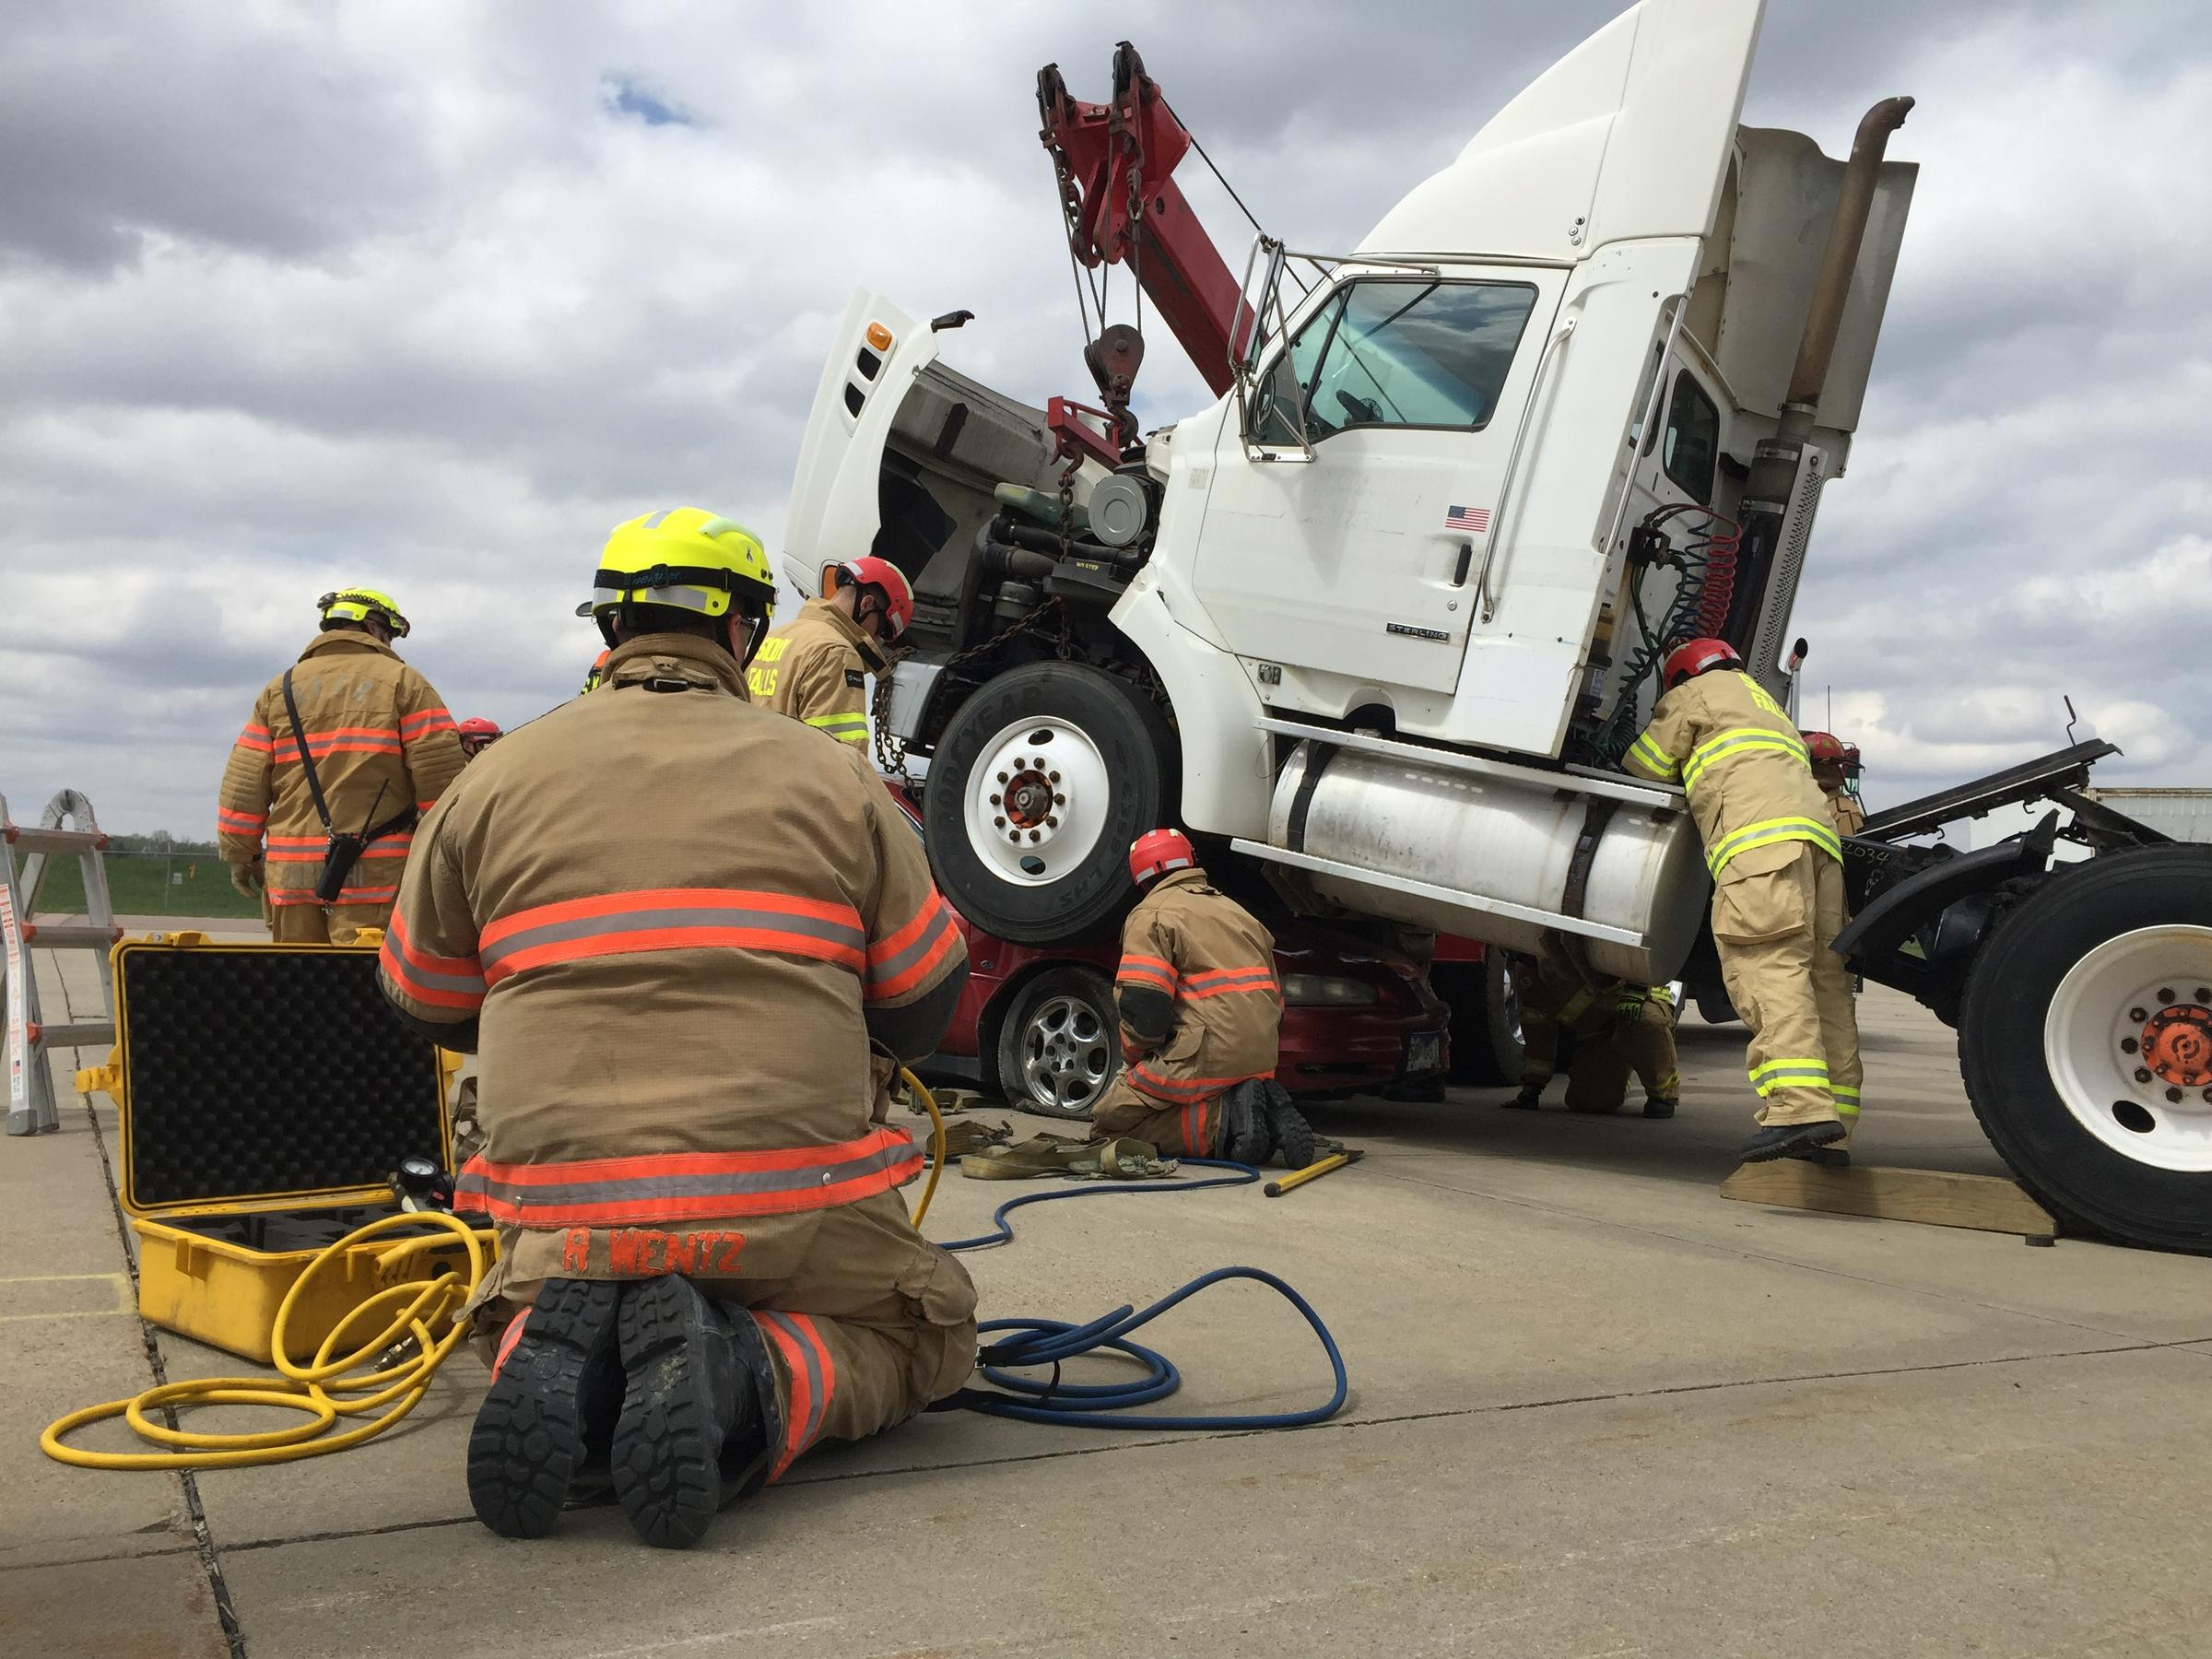 Fire Rescue Holds Training For Big Crashes | SDPB Radio